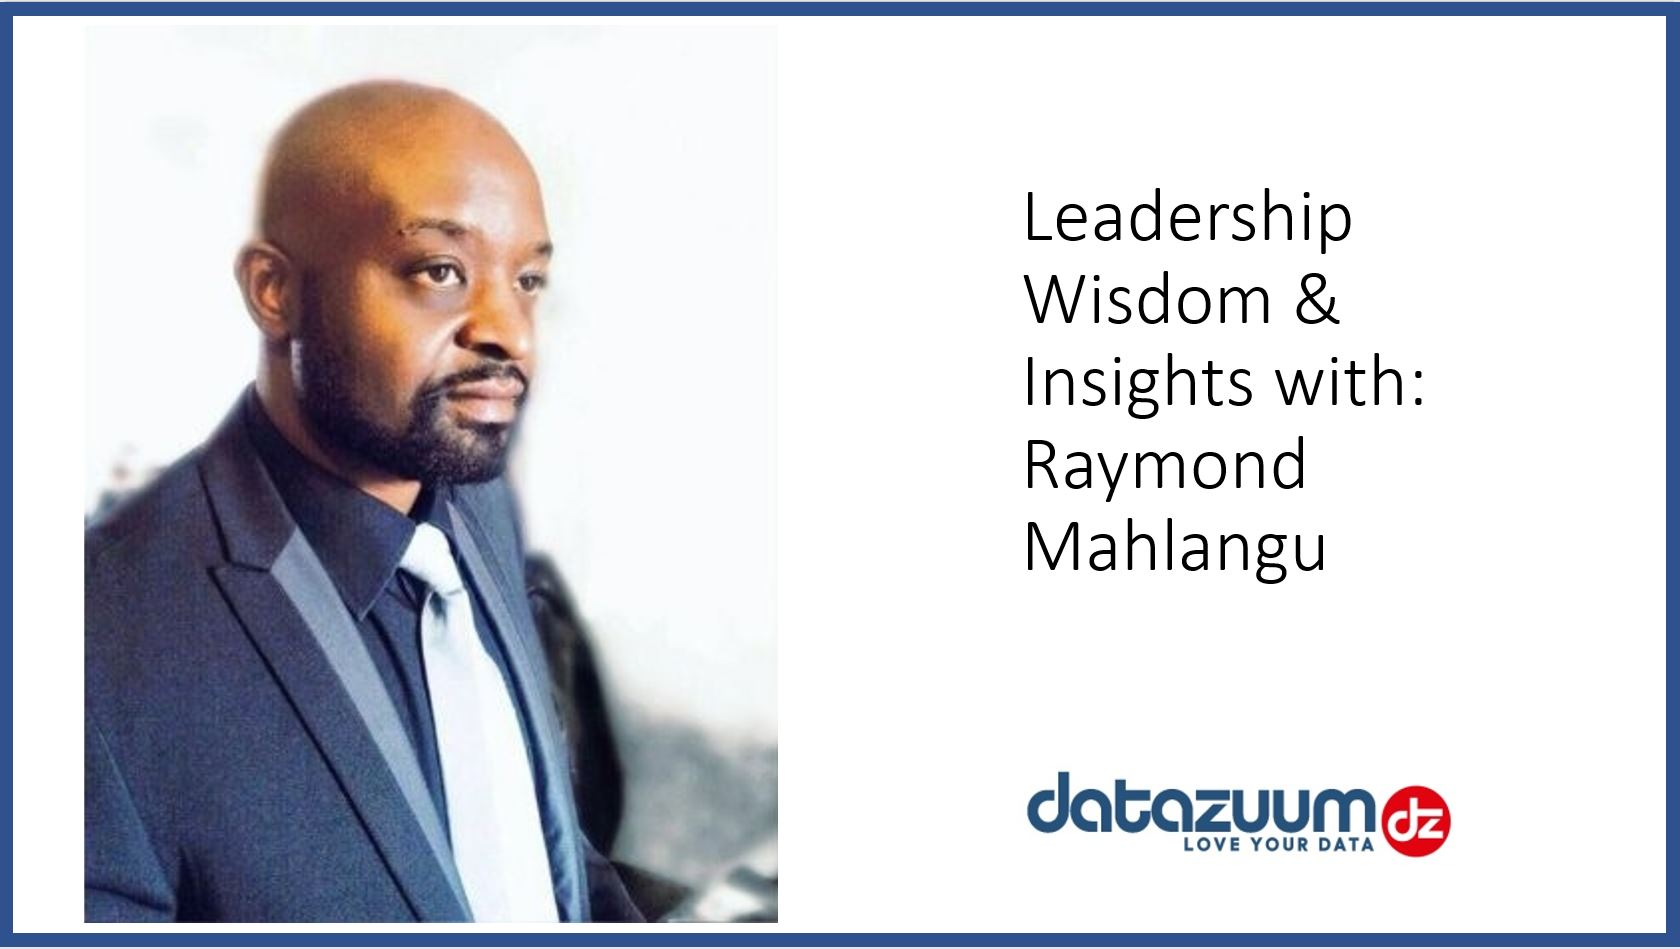 Leadership Wisdom & Insights with Raymond Mahlangu